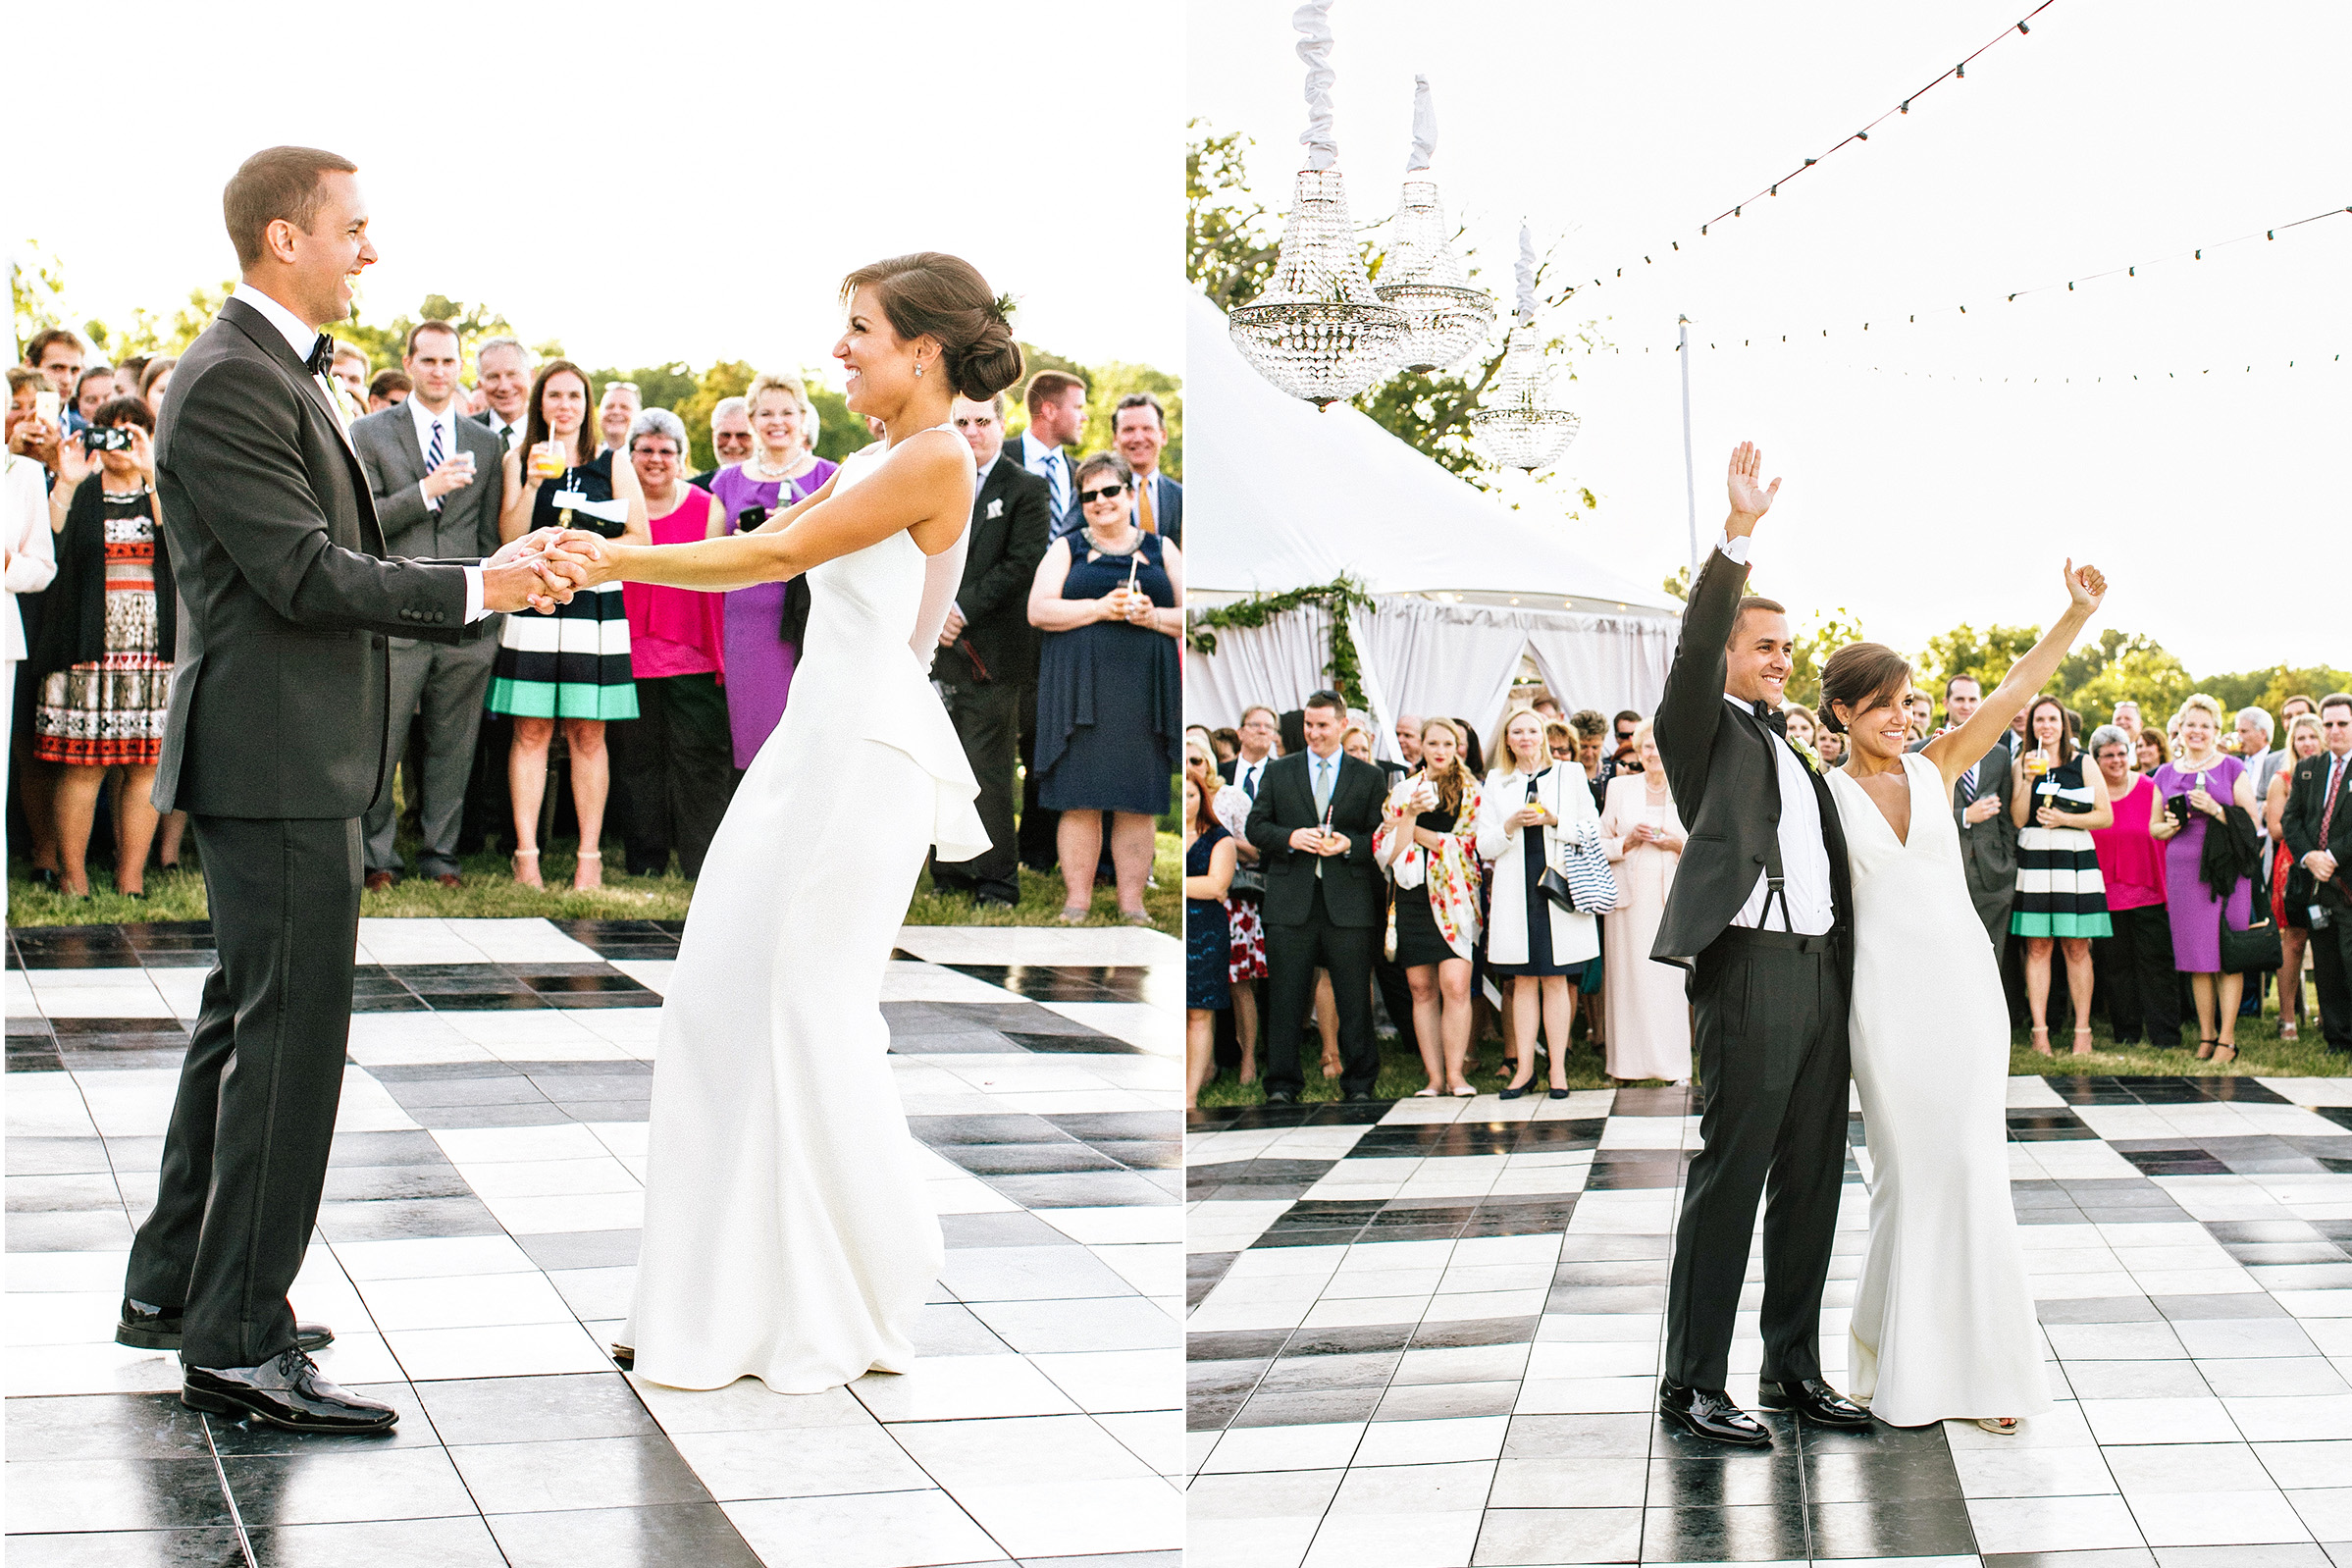 katie stoops photography-solomans island wedding45.jpg